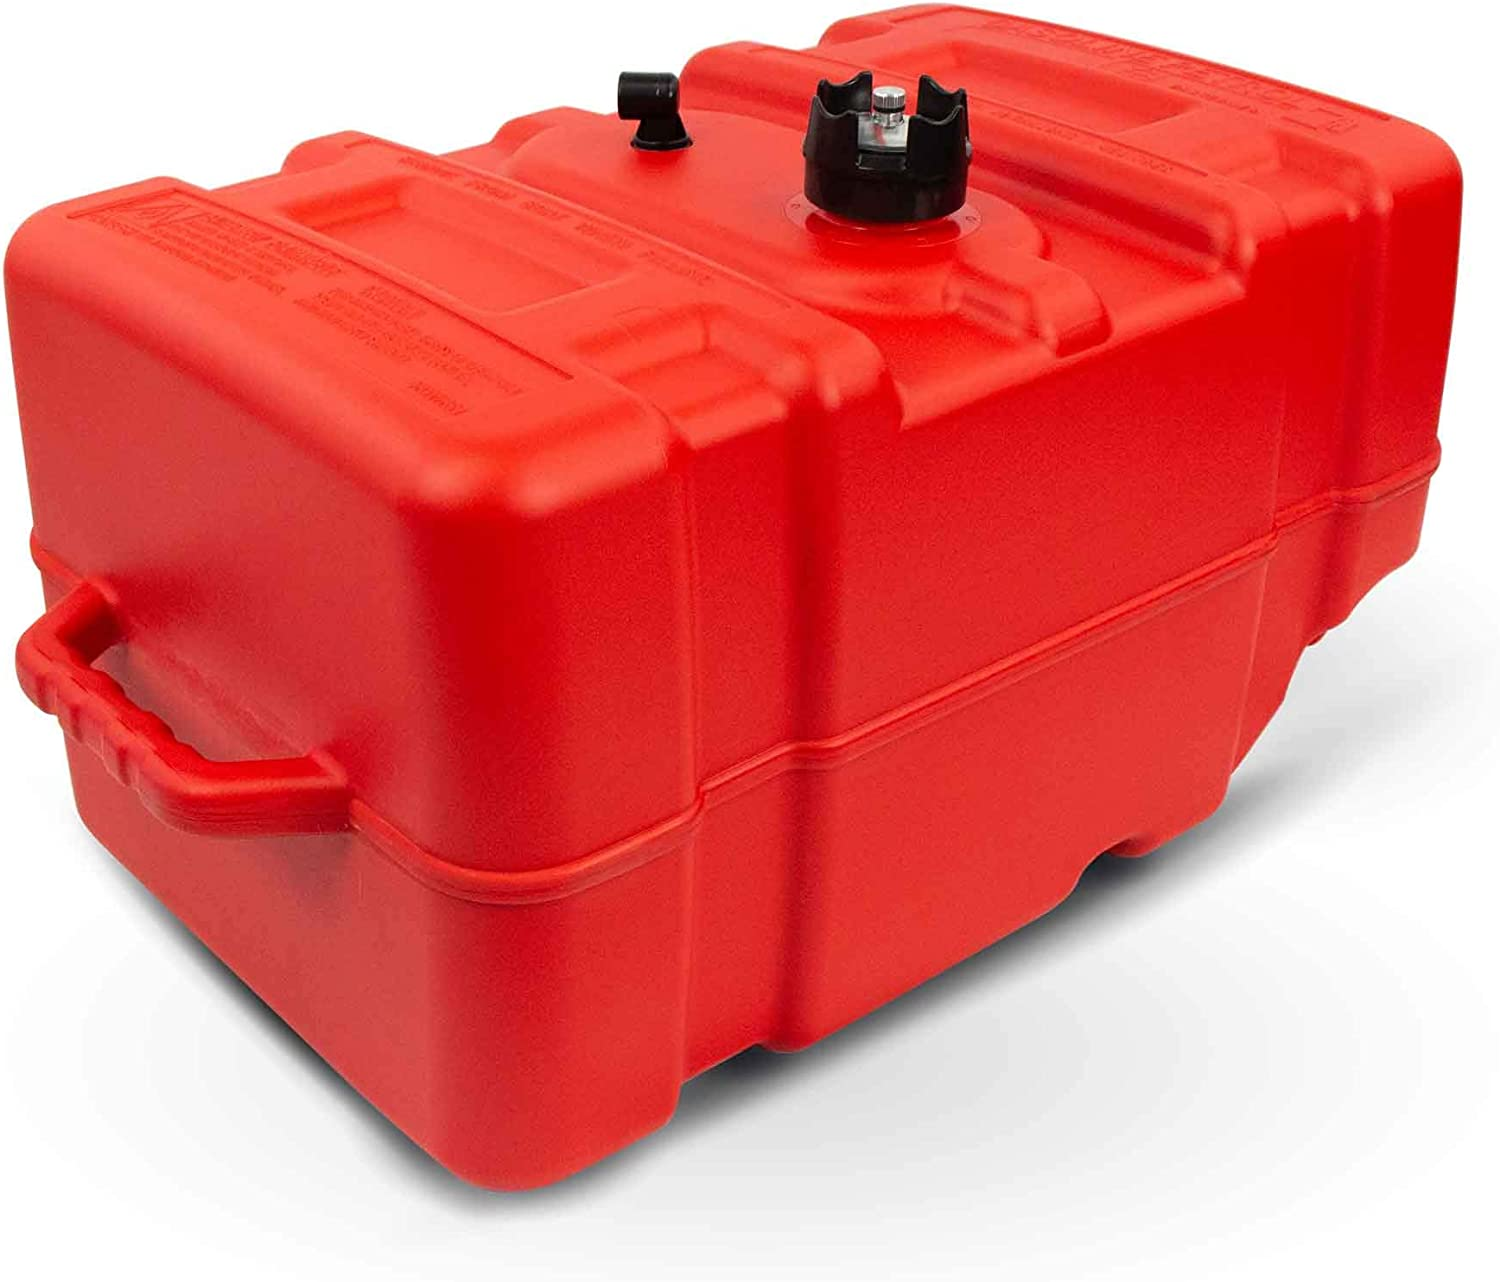 Five Oceans 12 Gallon Fuel Tank//Portable Kit for All Yamaha and Mercury Engines Connection 3//8IN Hose FO-4269-C4